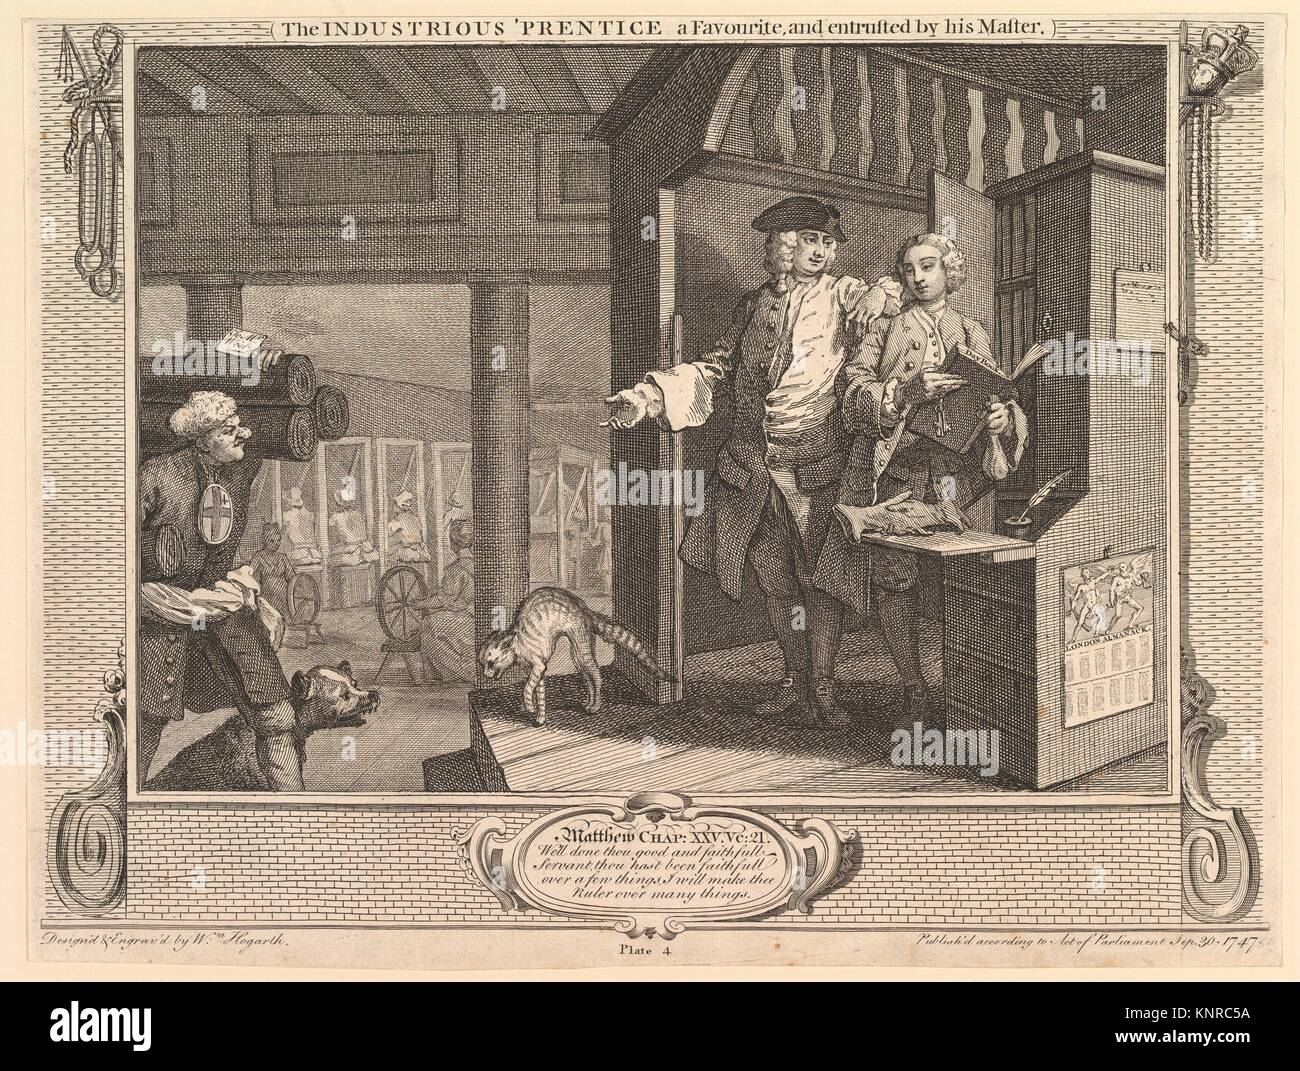 The Industrious 'Prentice a Favorite, and Entrusted by his Master: Industry and Idleness, plate 4. Artist: William - Stock Image